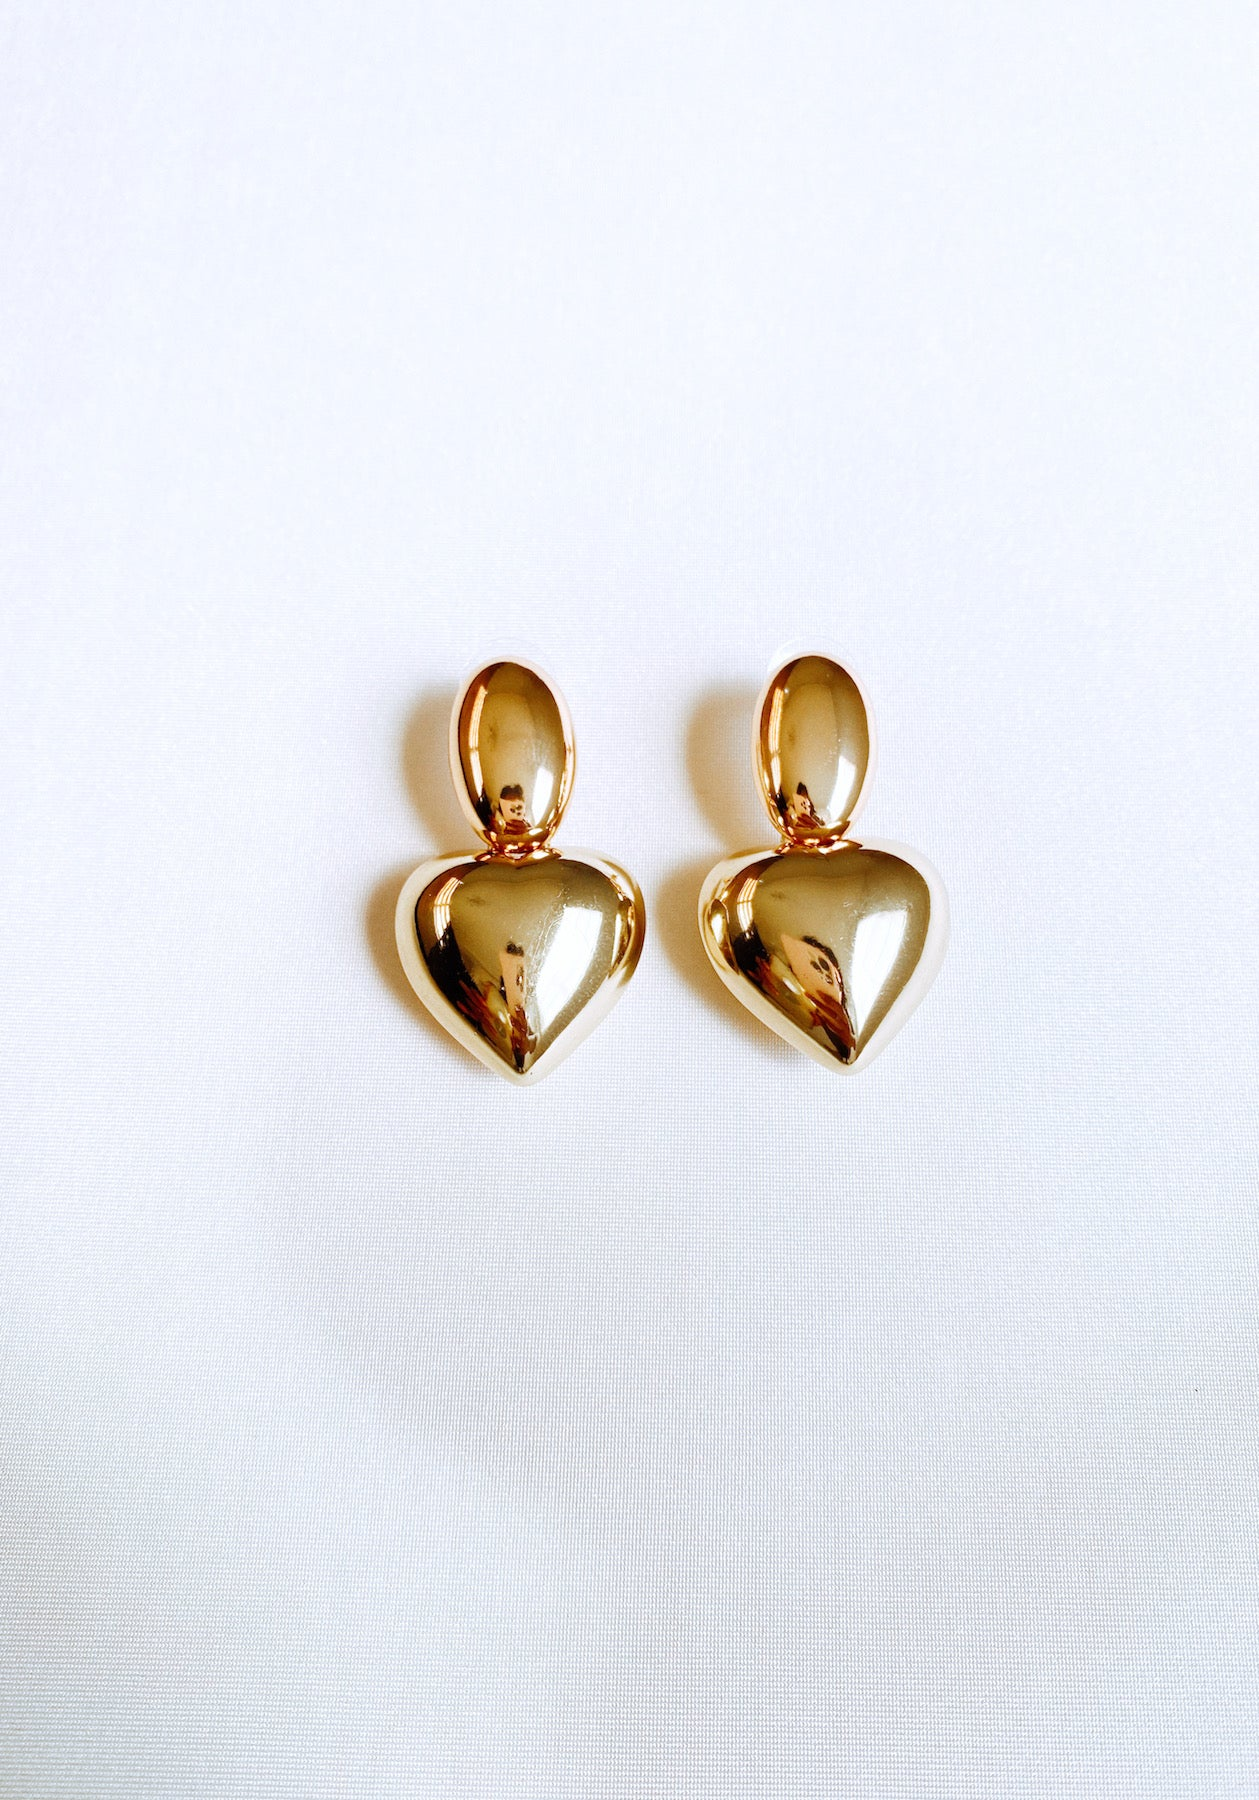 HEARTY GOLD EARRINGS - Lurelly